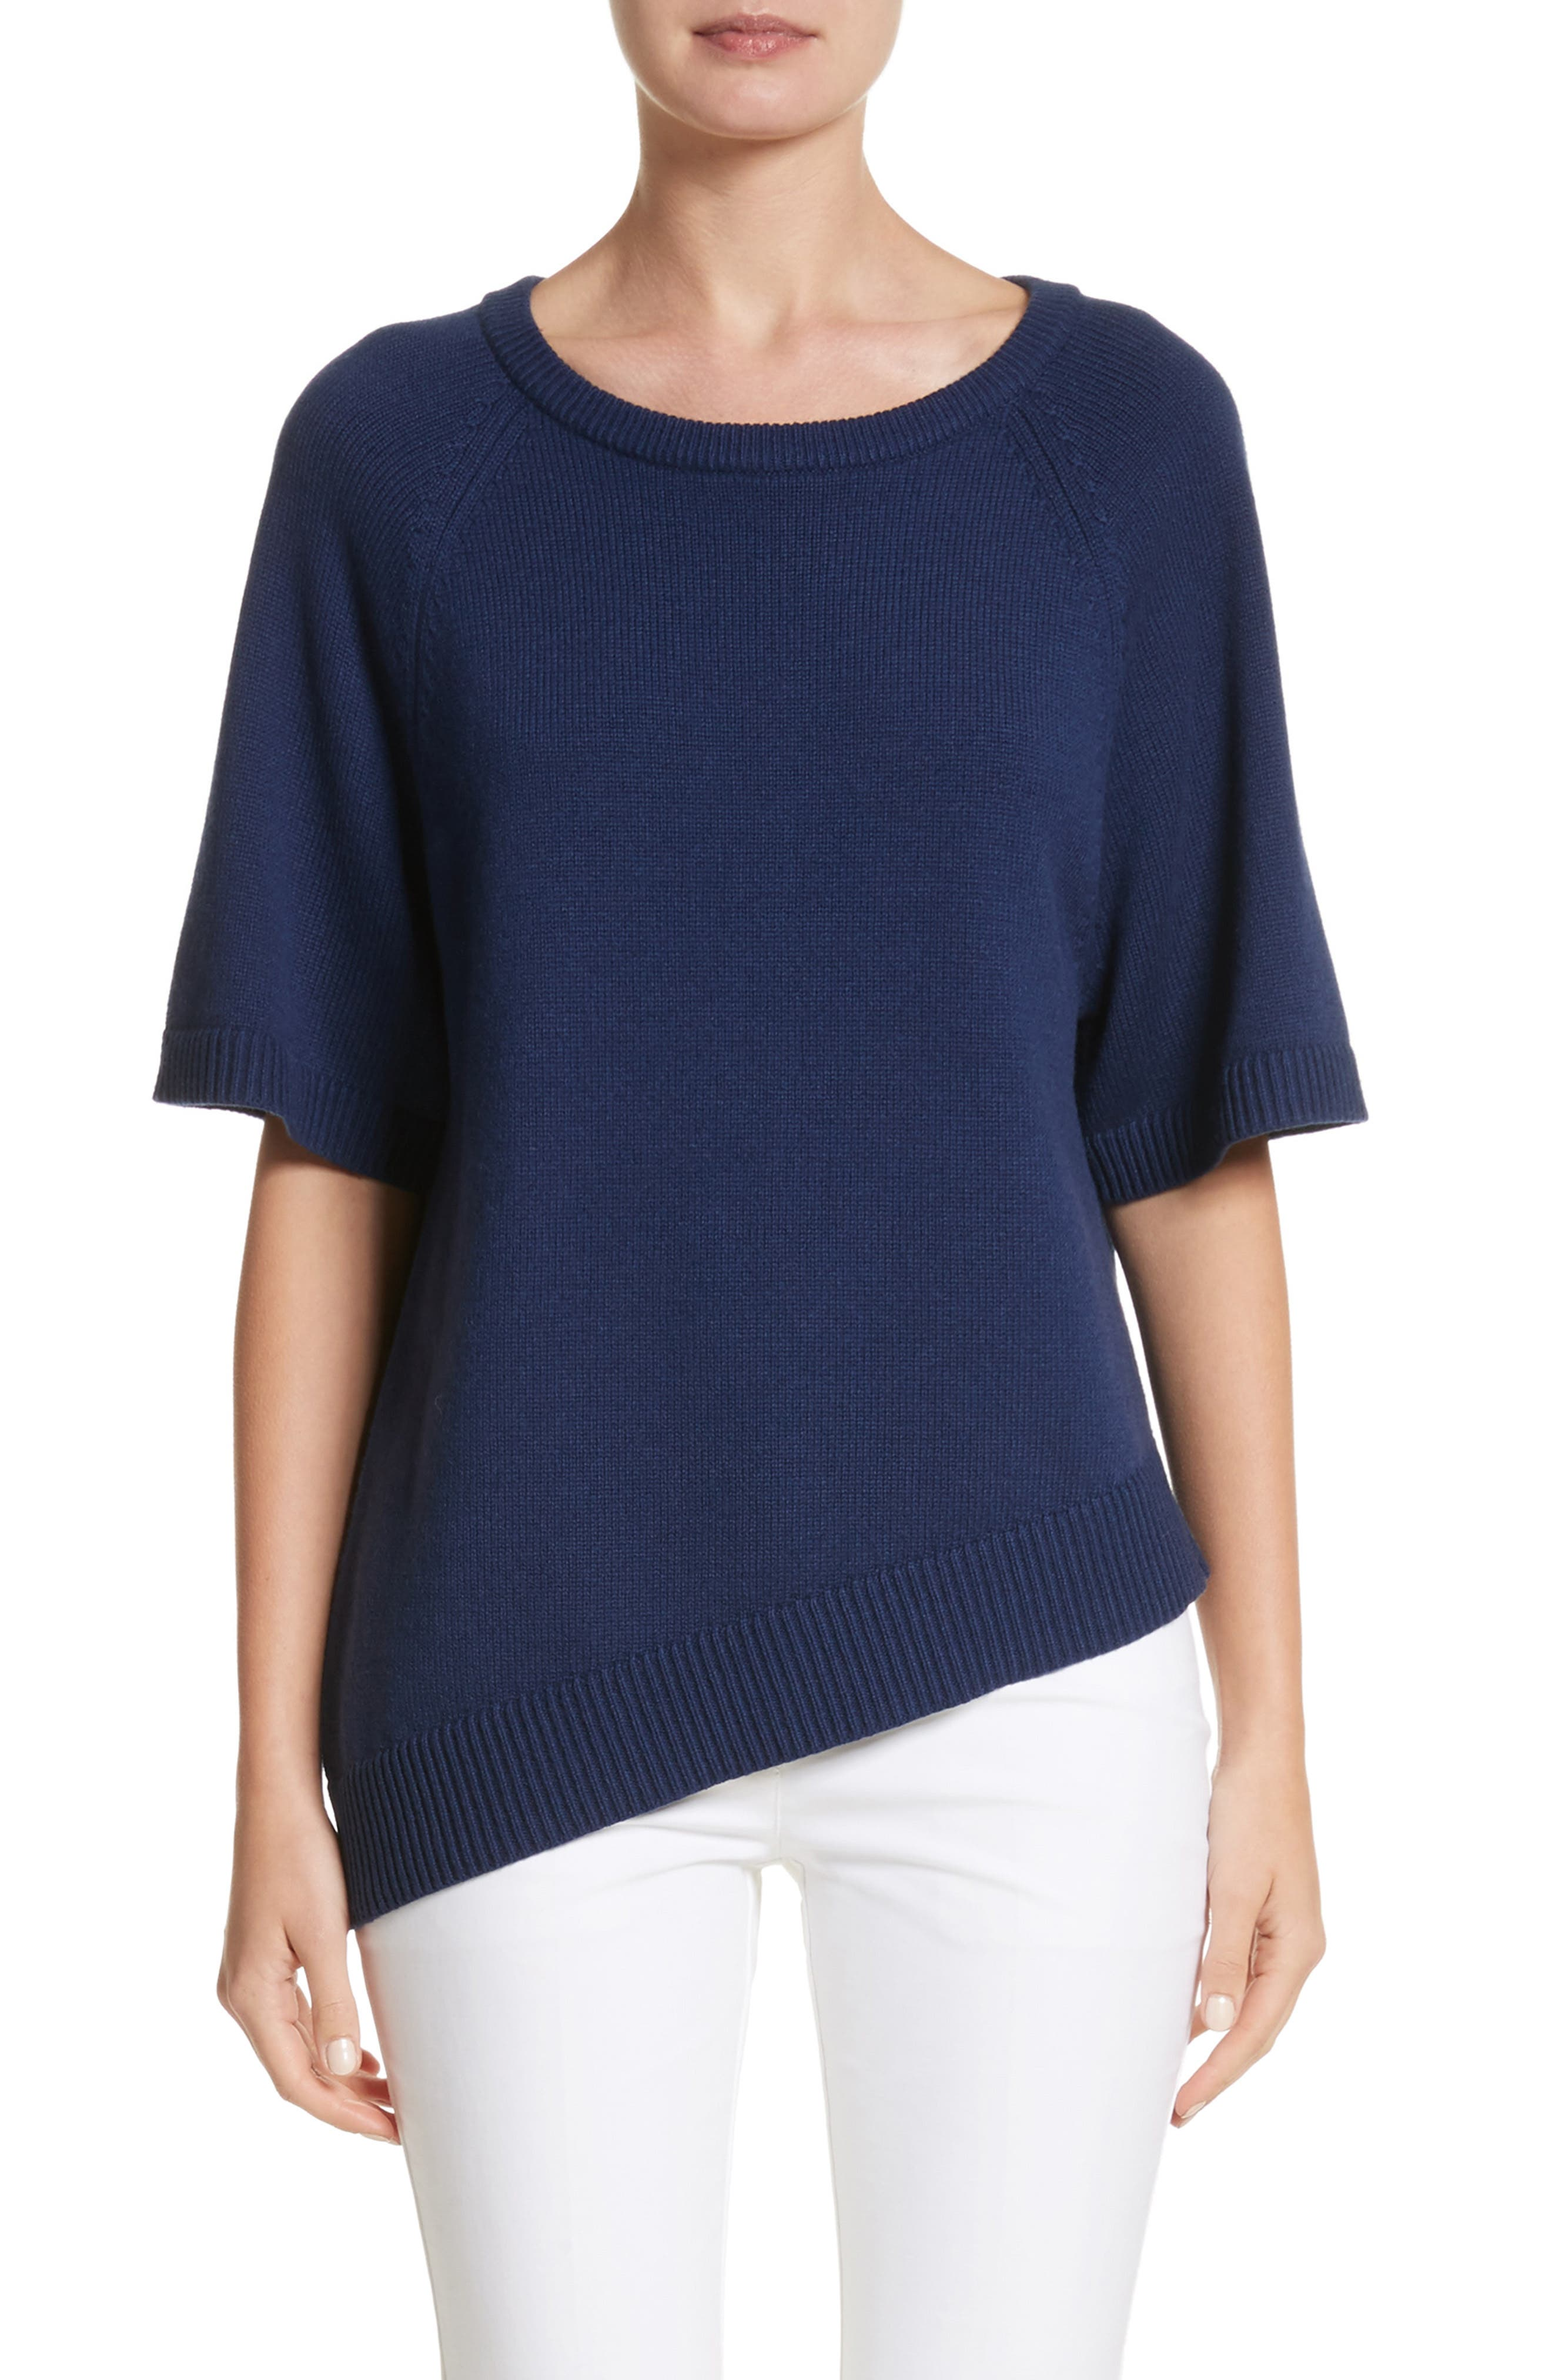 Alternate Image 1 Selected - Michael Kors Asymmetrical Cashmere Pullover